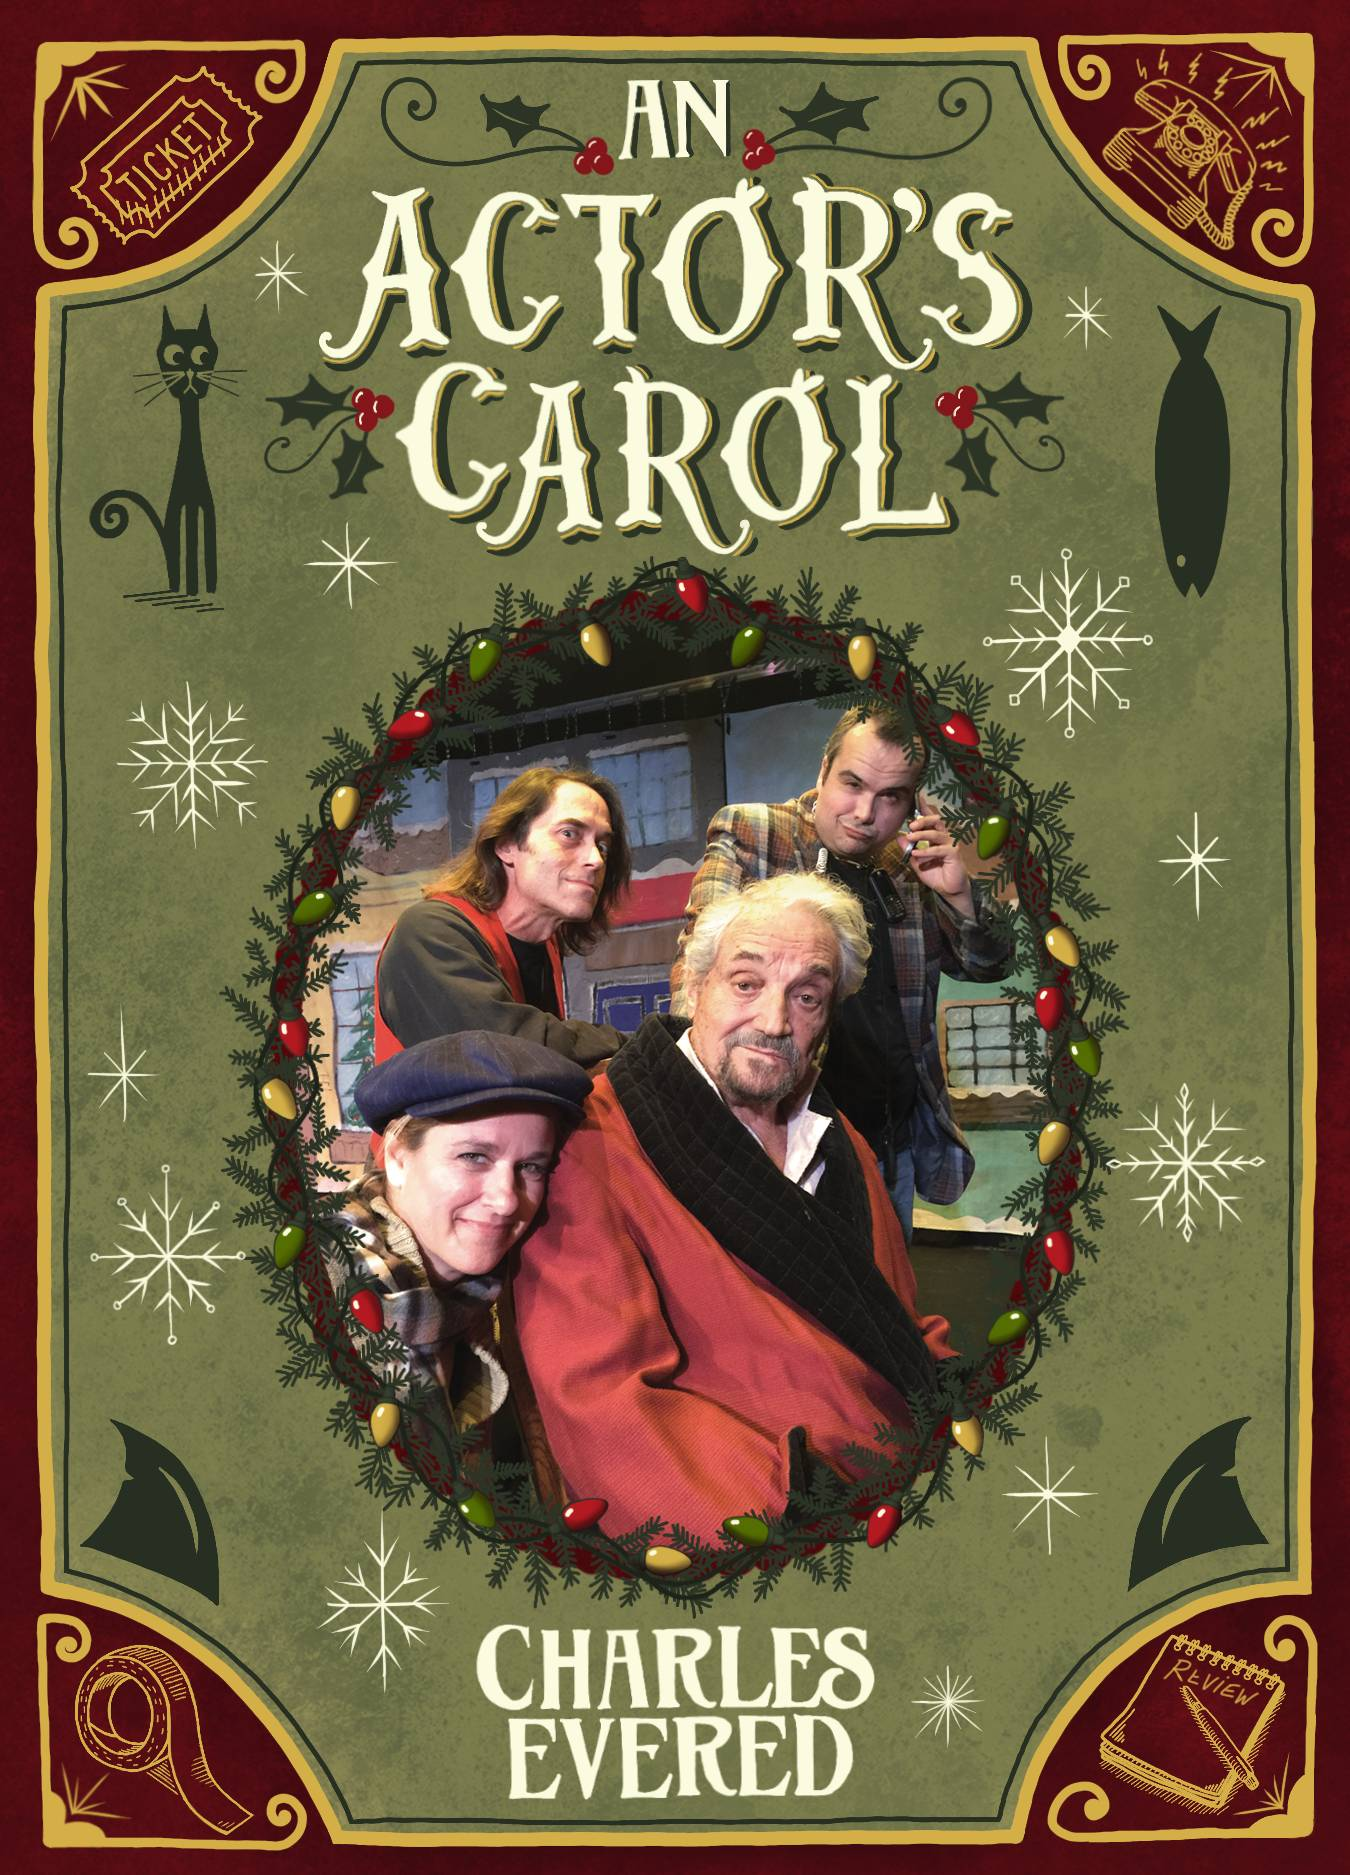 An Actor's Carol Play by Charles Evered